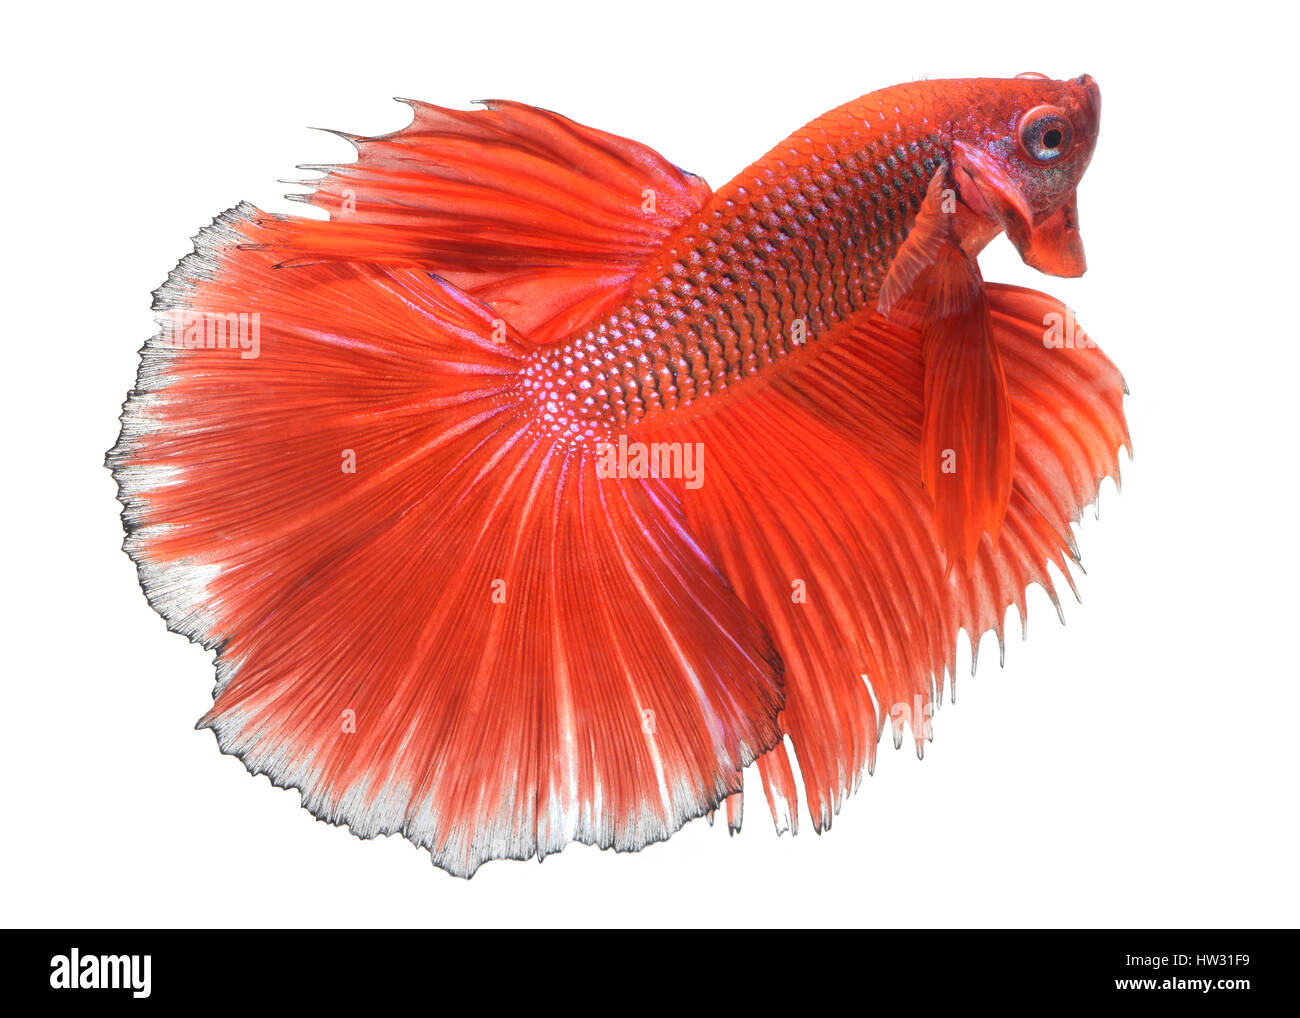 Butterfly Fish Cut Out Stock Images & Pictures - Alamy